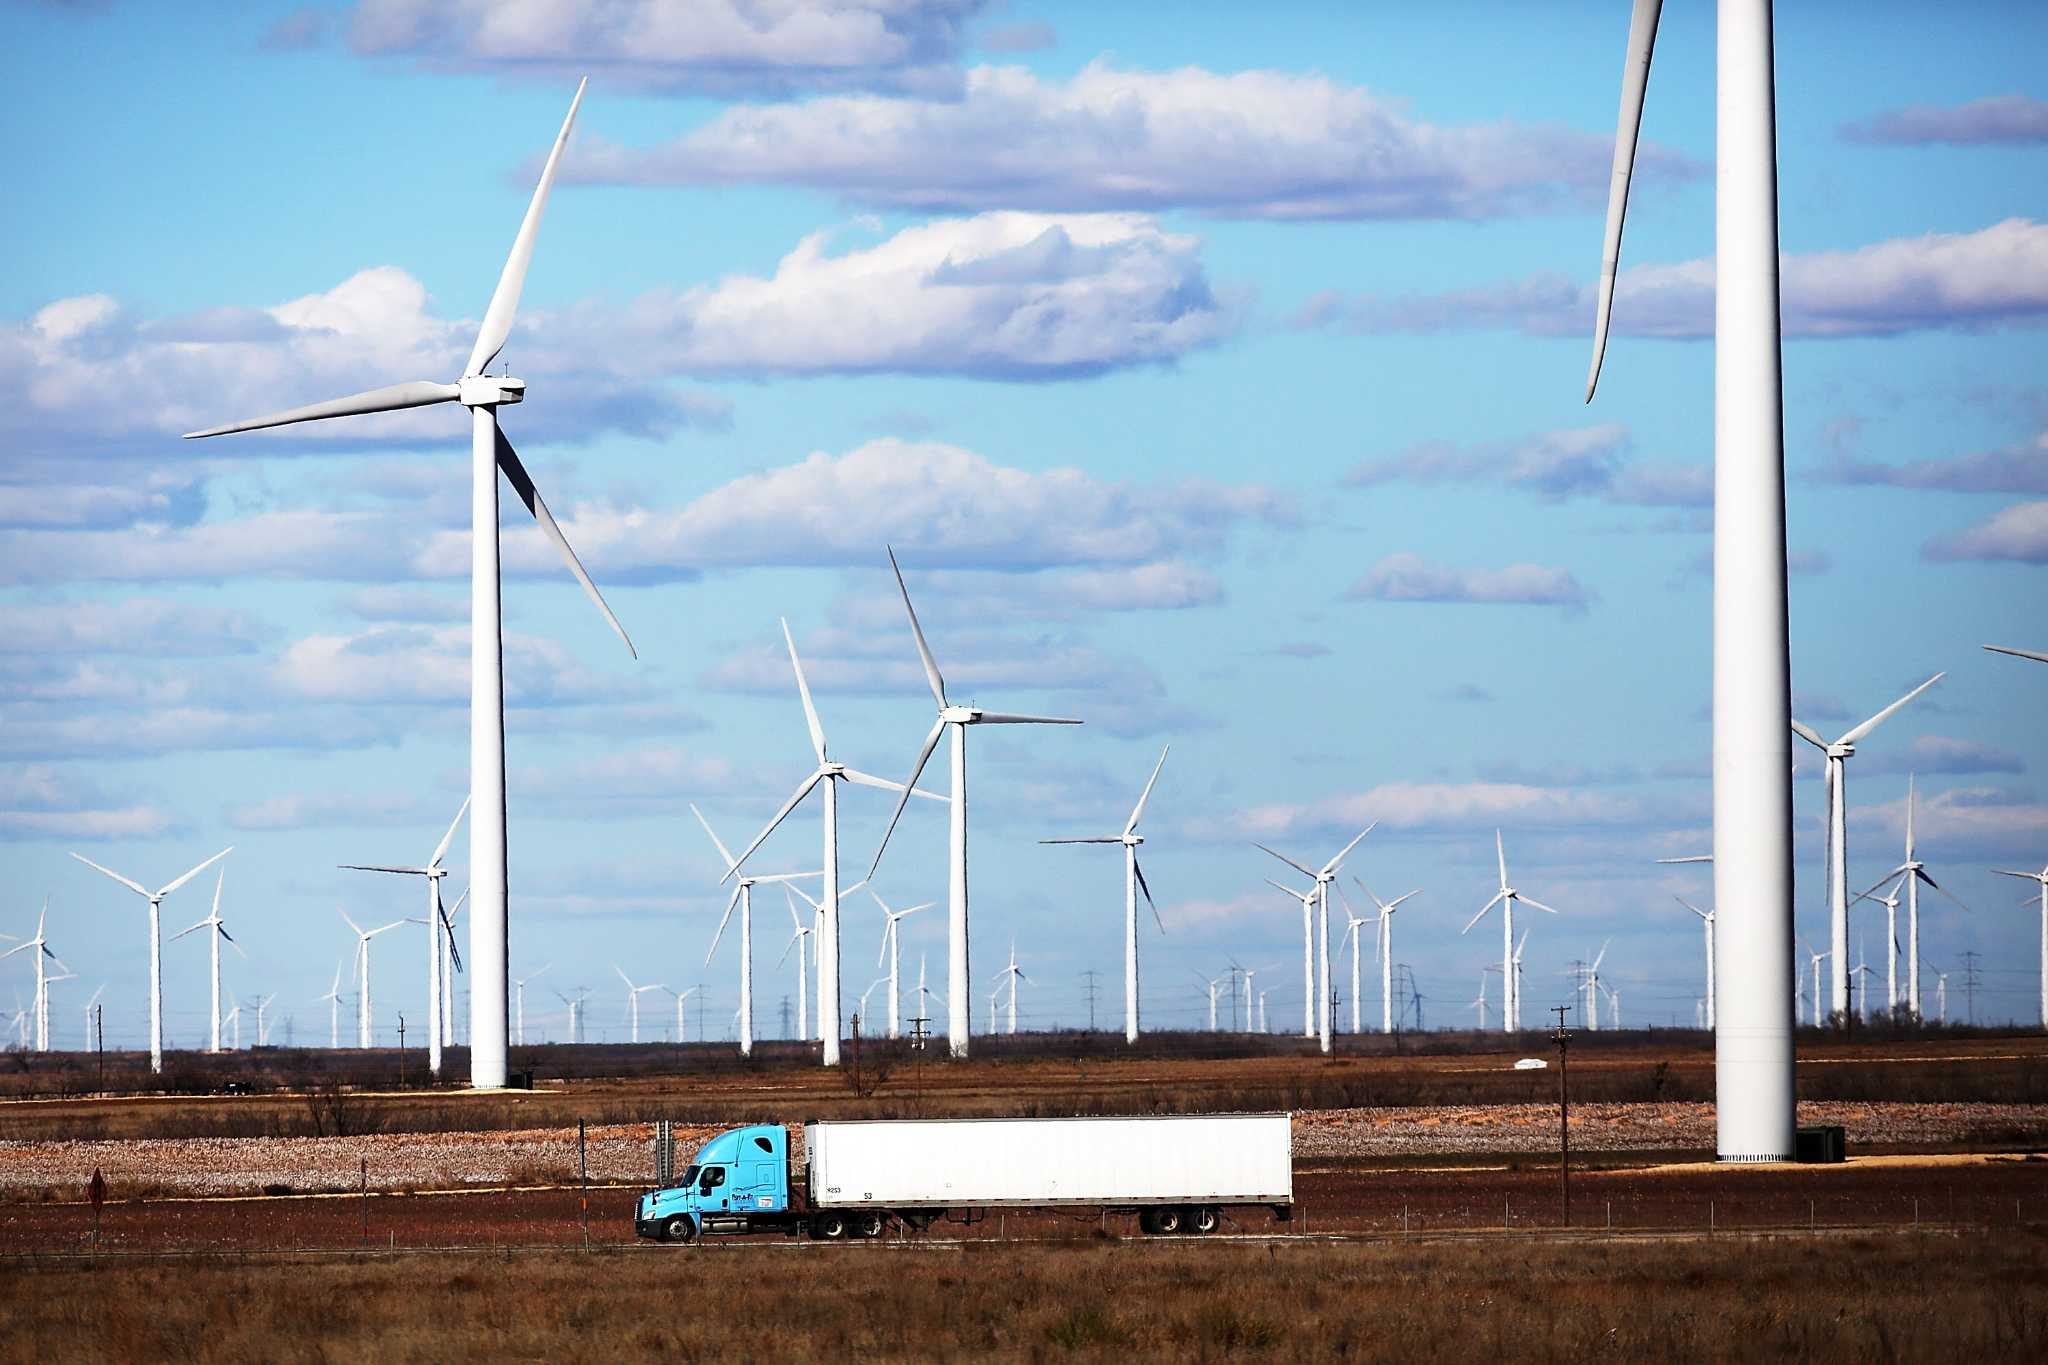 Oil industry to turn to renewables in coming decades ...